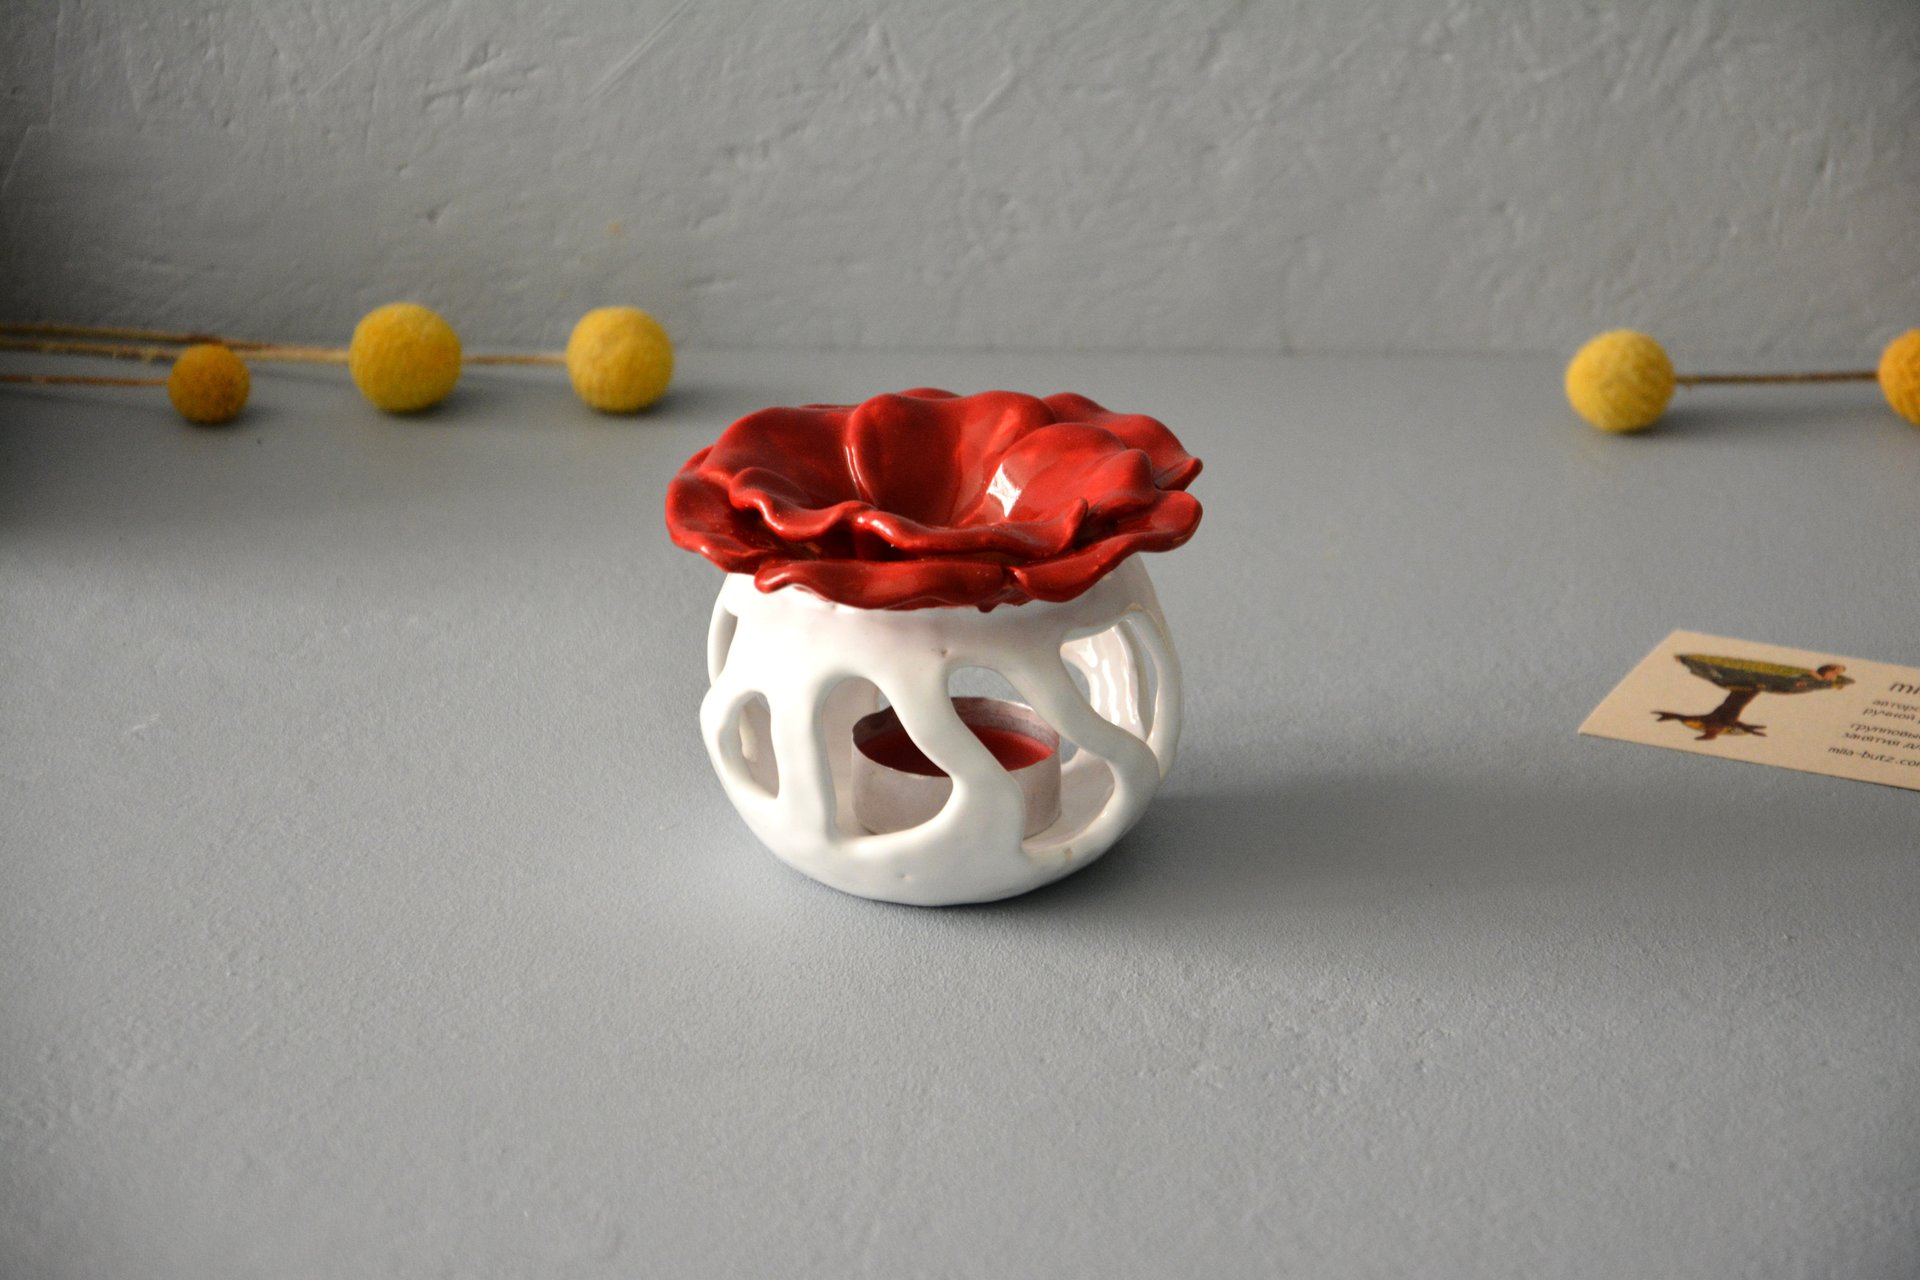 Ceramic Aroma Lamp Poppy, White with Red, color - white with red, height - 8.5 cm, diameter - 9 cm, photo 3 of 5.